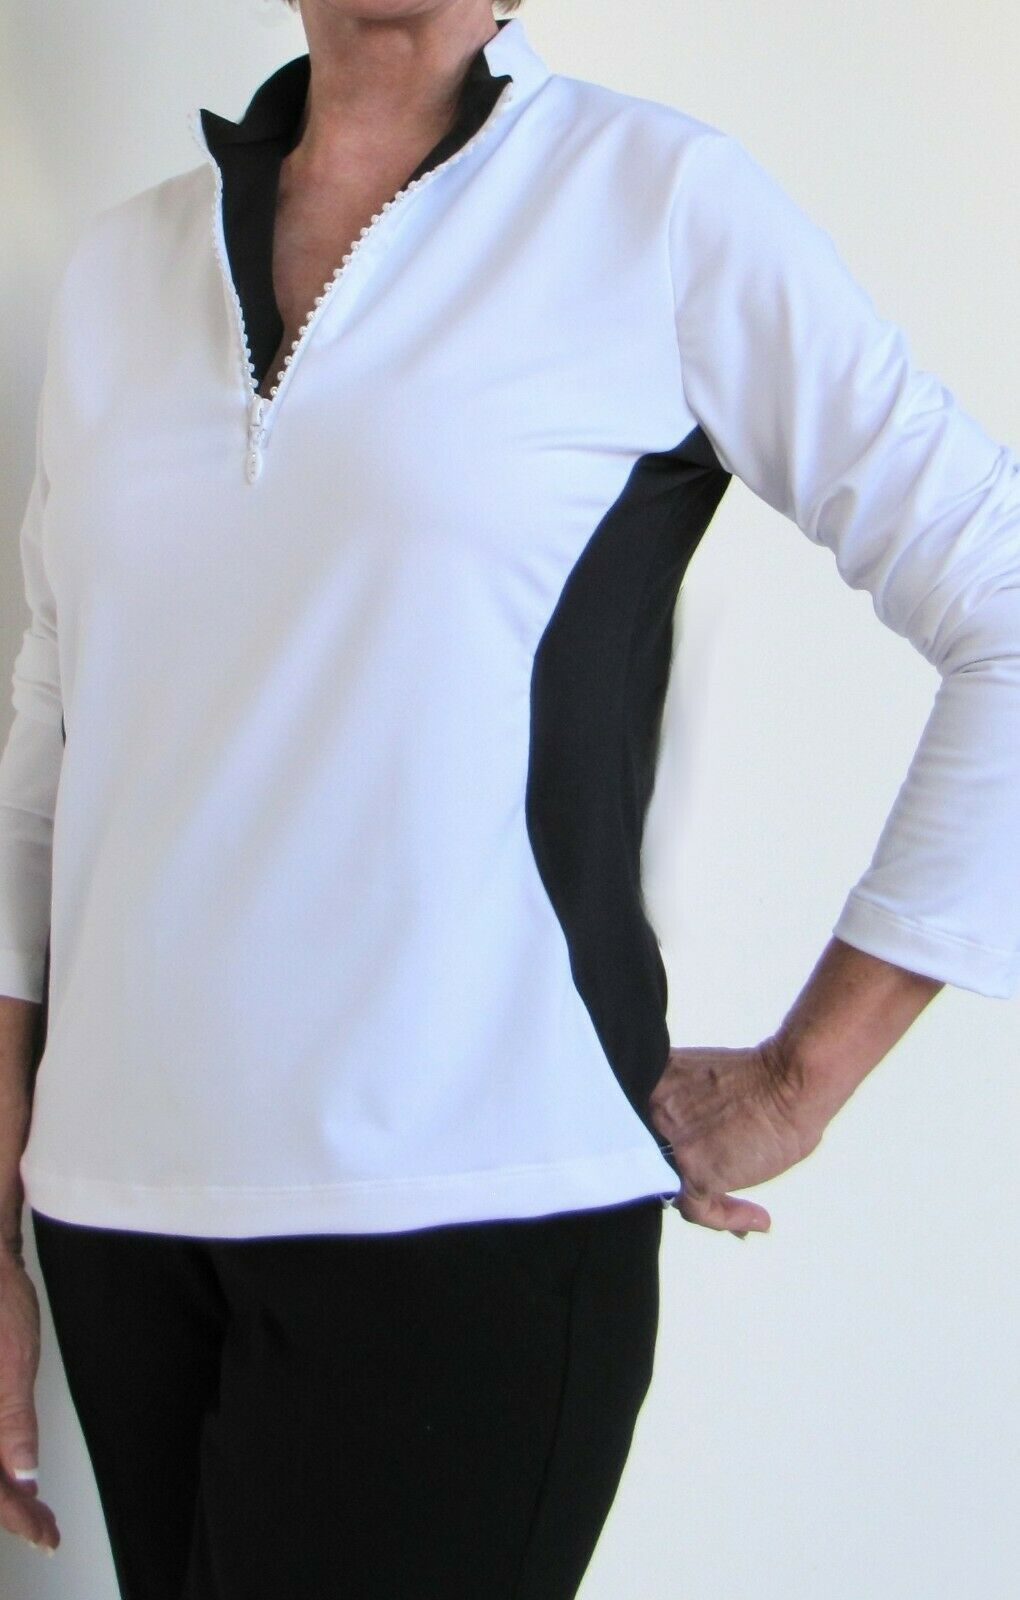 GOLF & CASUAL TAN LONG SLEEVE TOP WITH ZIPPER NECK  - NEW - GOLDENWEAR image 4